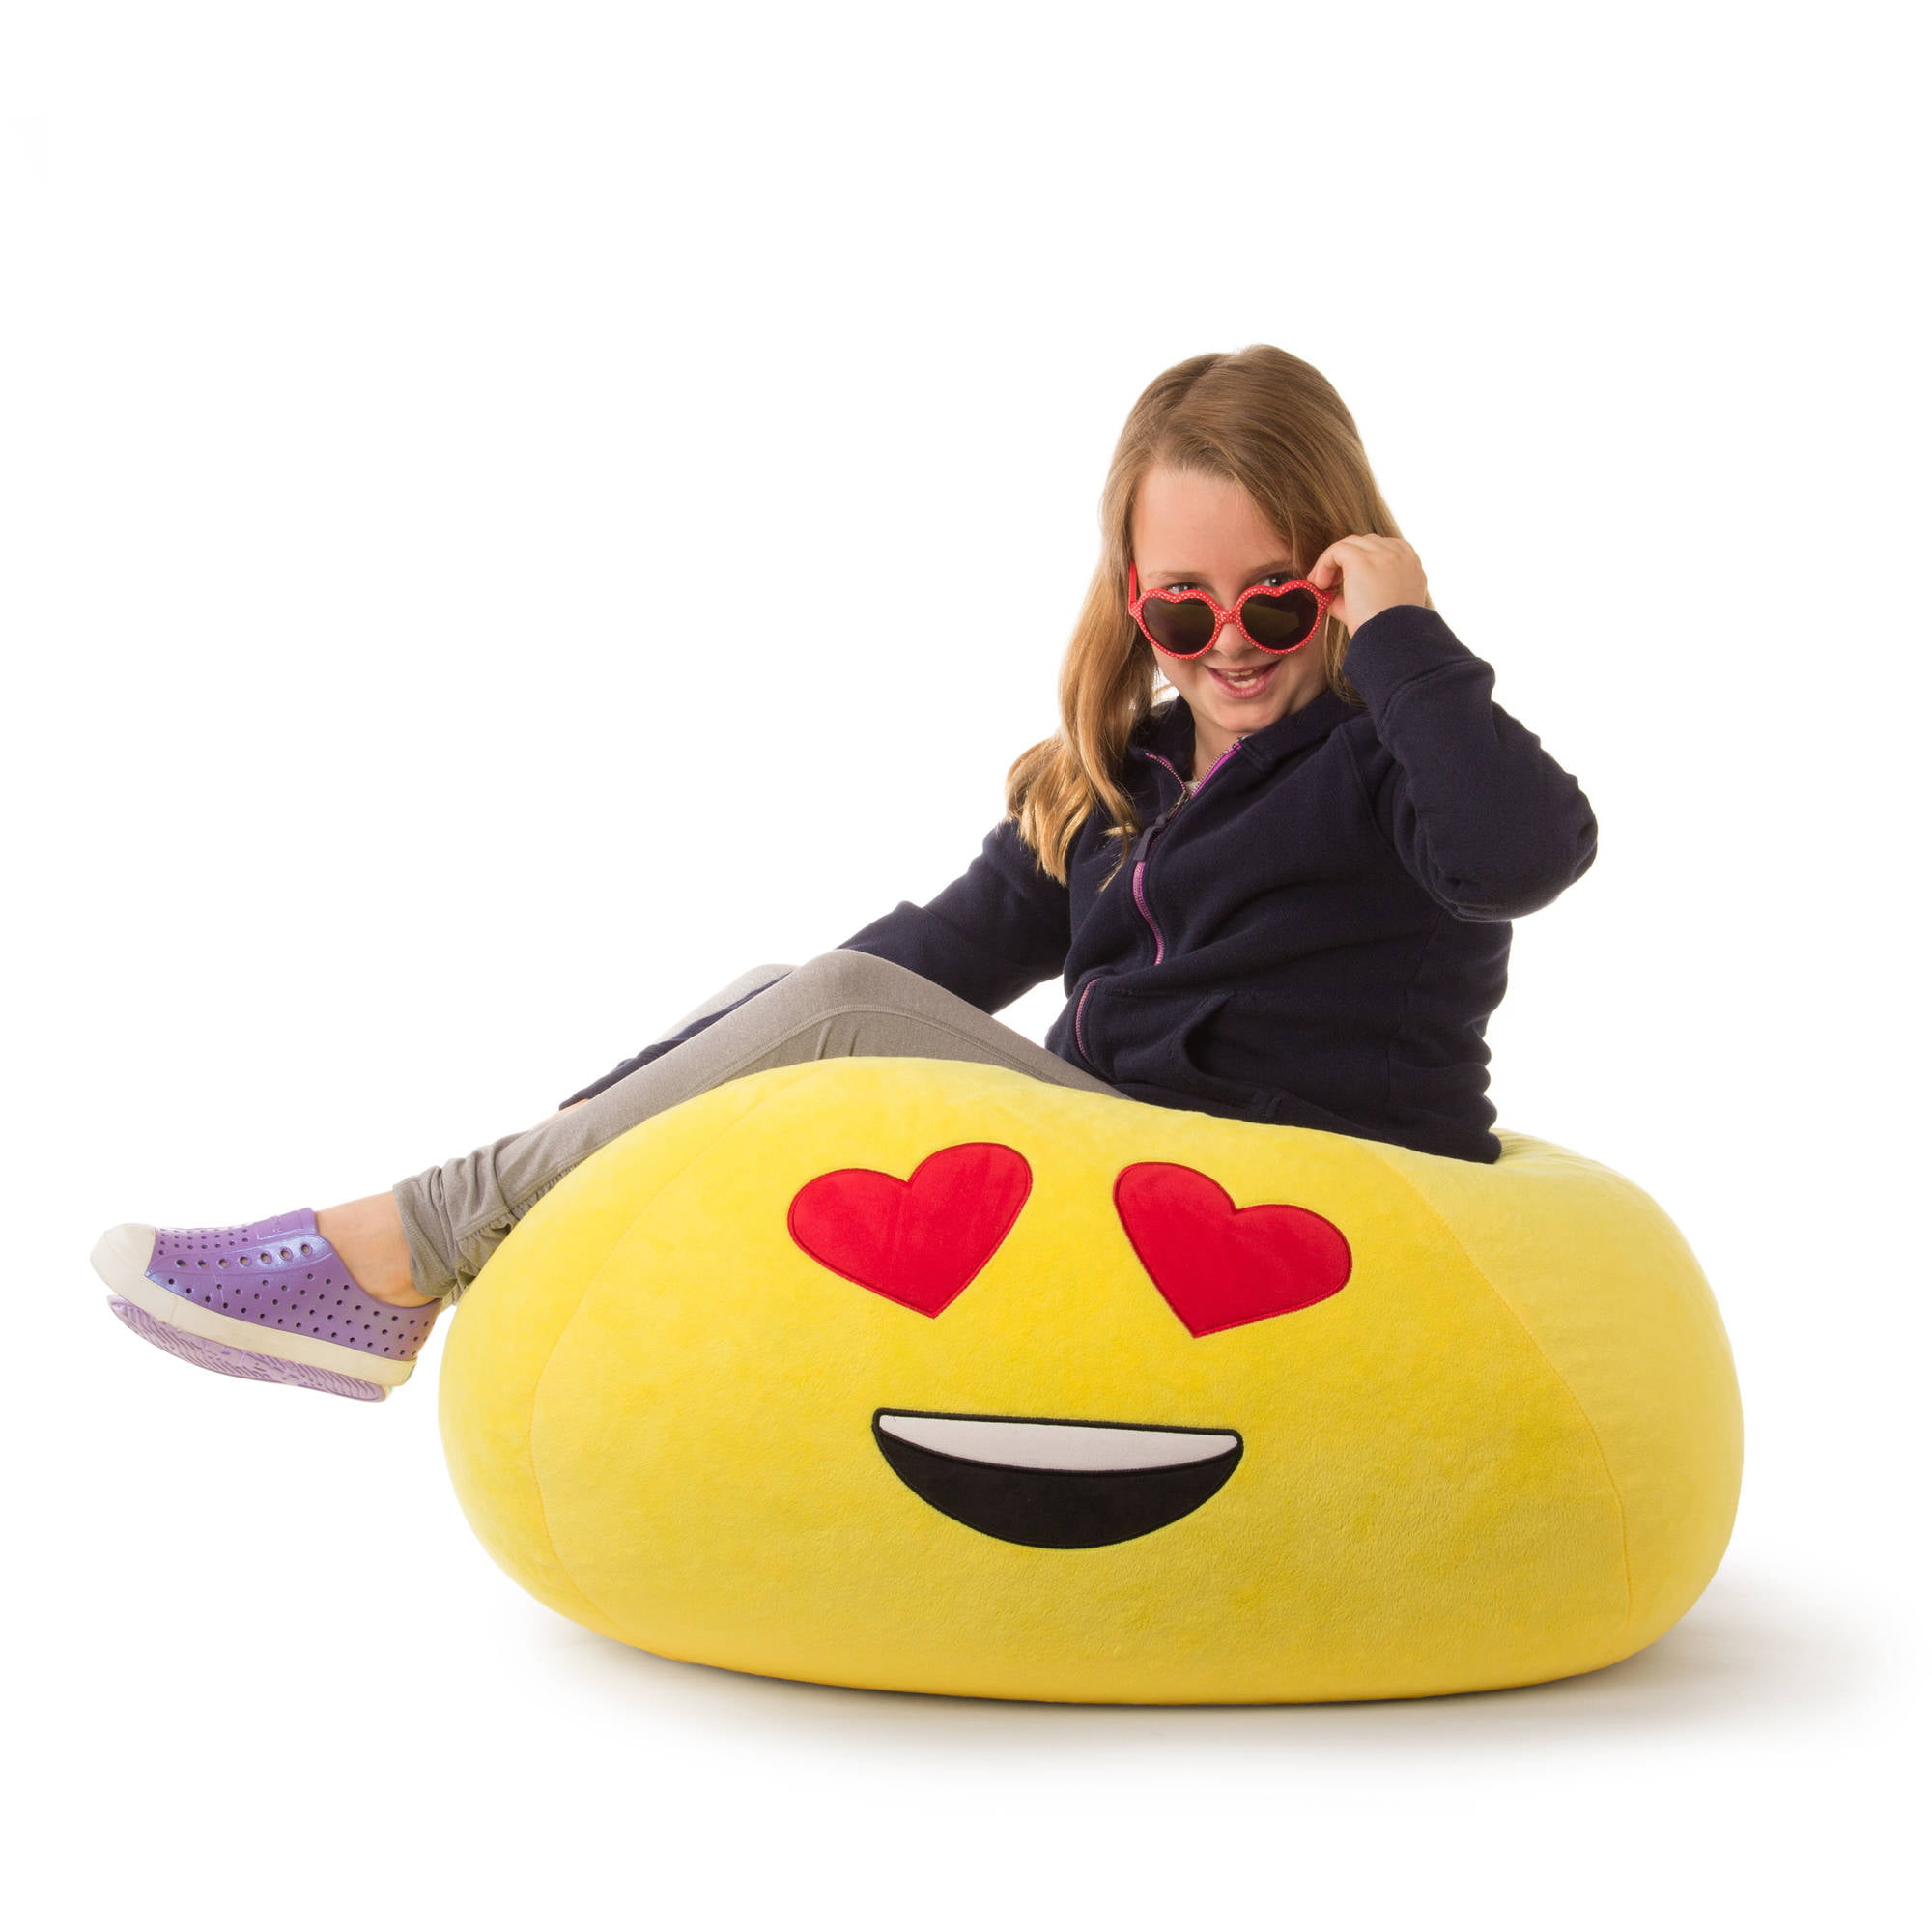 Emoji Emoticon Bean Bag Soft Chair Comfortable Sofa Seat  : efd3c70e a7ec 40c7 9048 e441538ed46b101dc9cd6c4fb54ddd316946b703d7ac8 from www.ebay.com size 2000 x 2000 jpeg 183kB